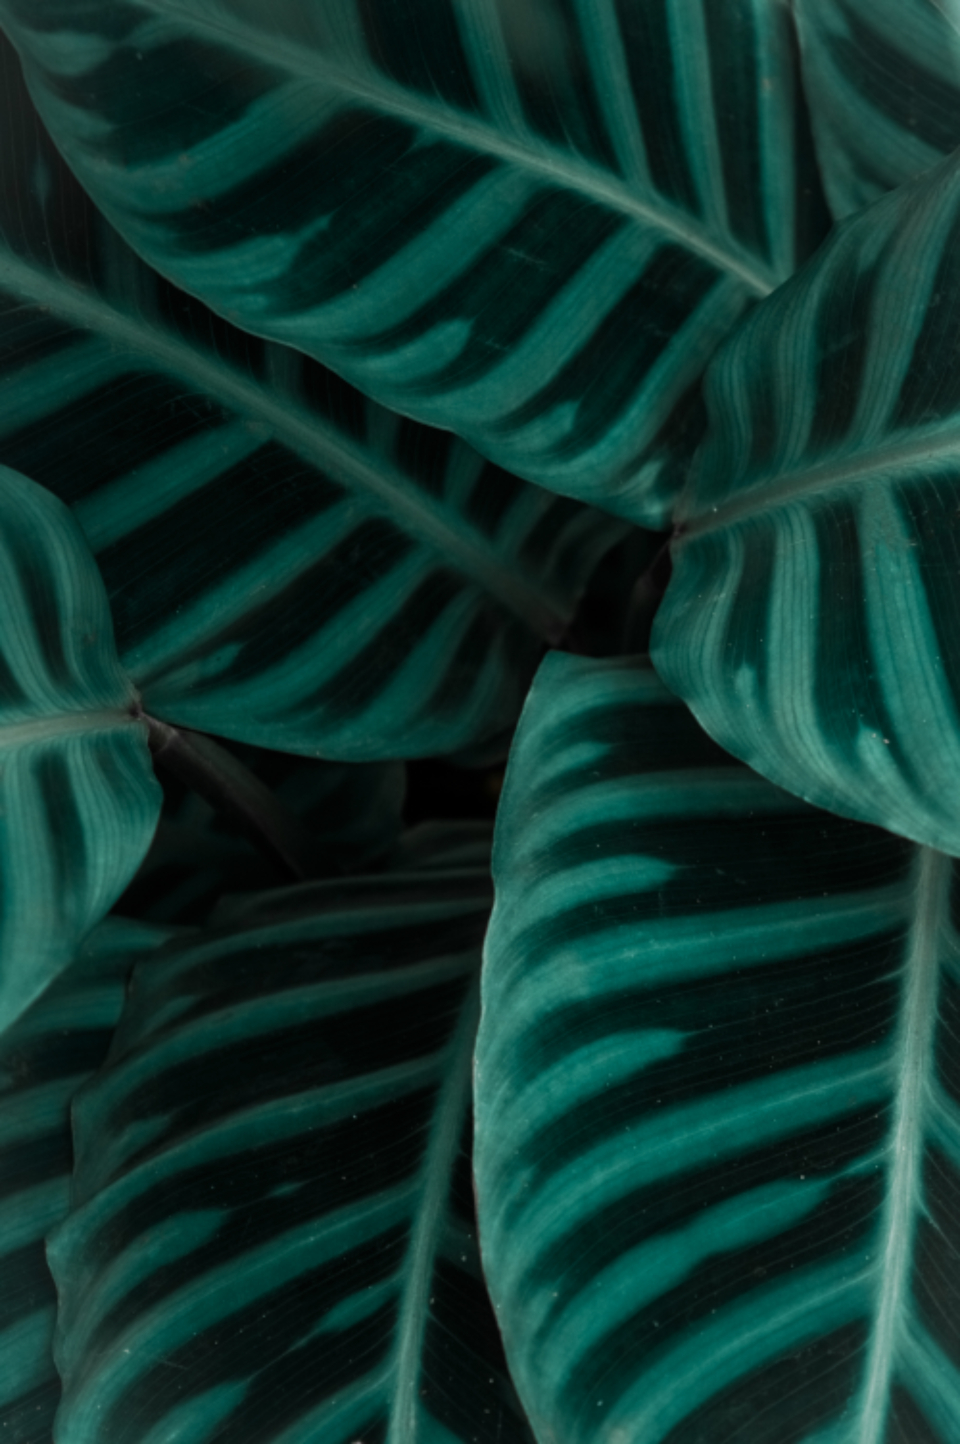 plant leaf textures pattern close up nature dark vegetation organic